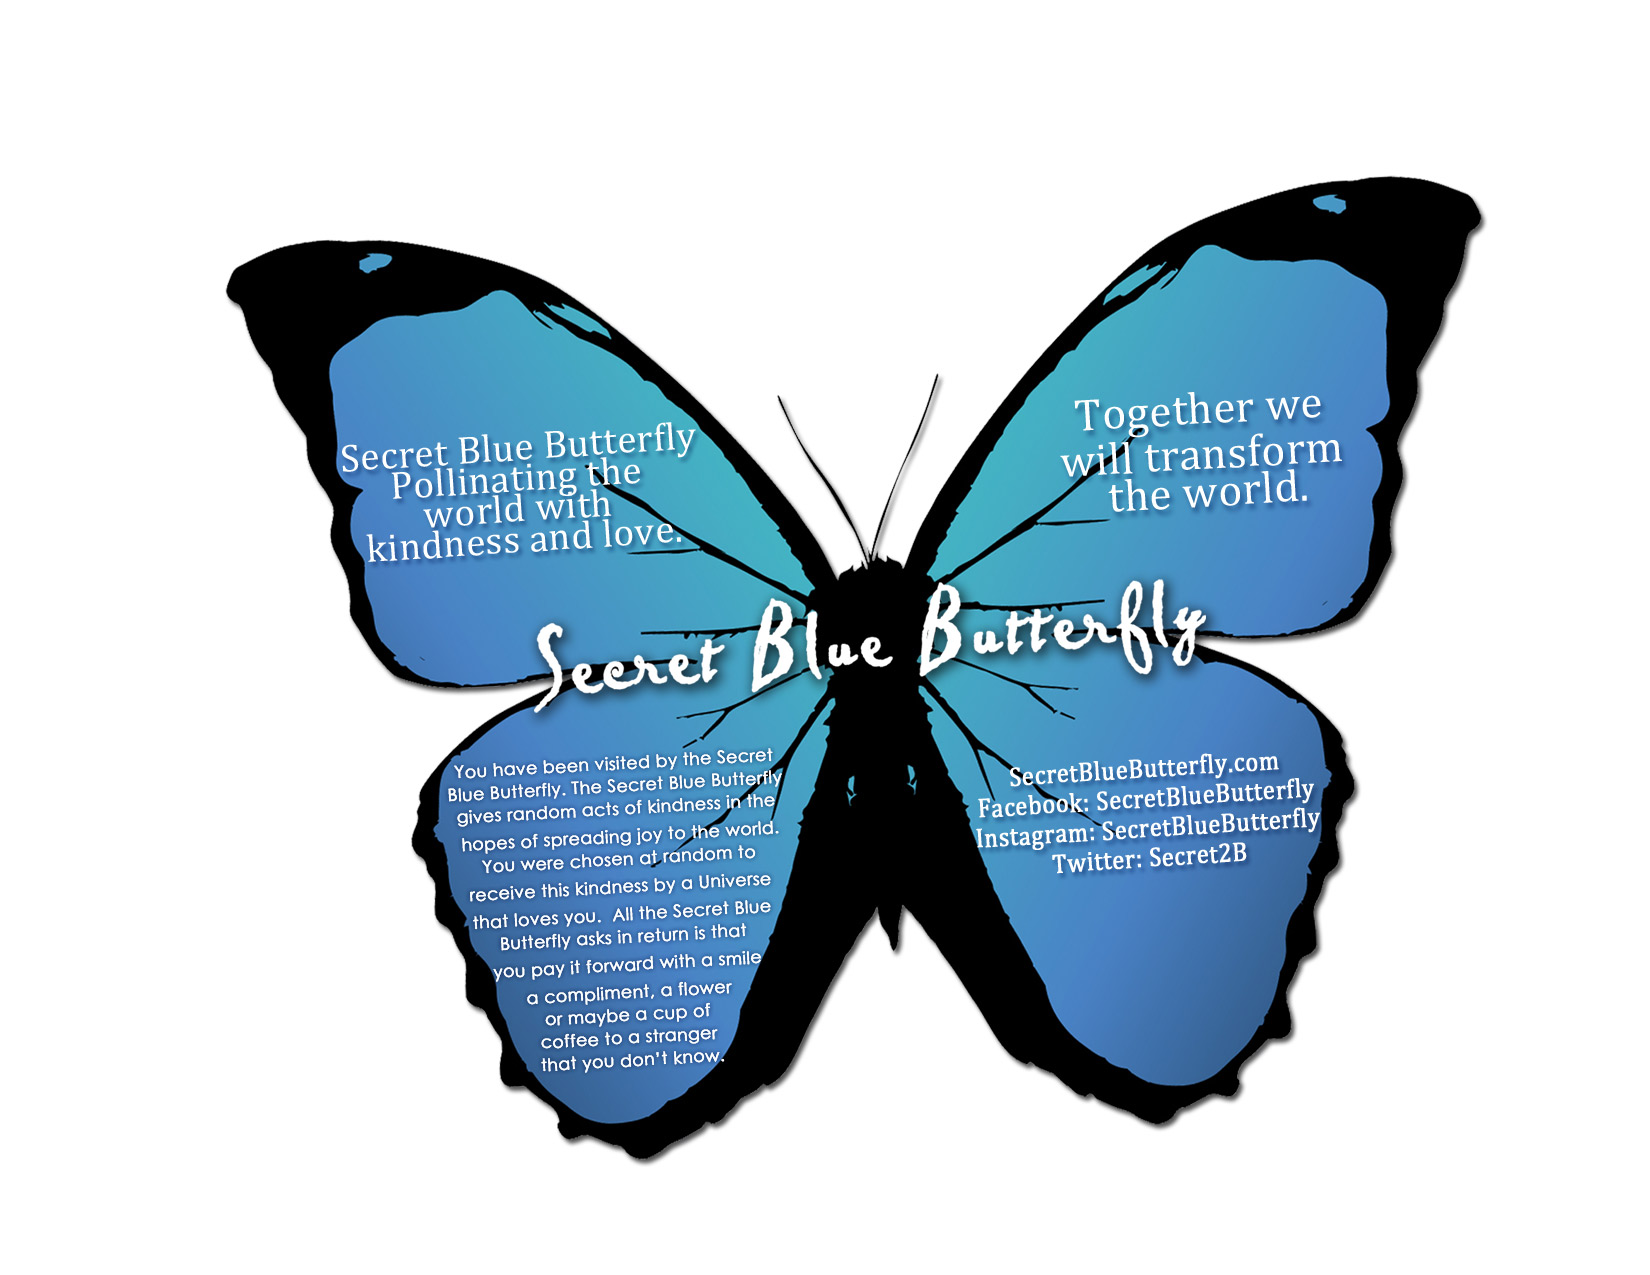 secret blue butterfly u2013 pollinating the world with kindness and love